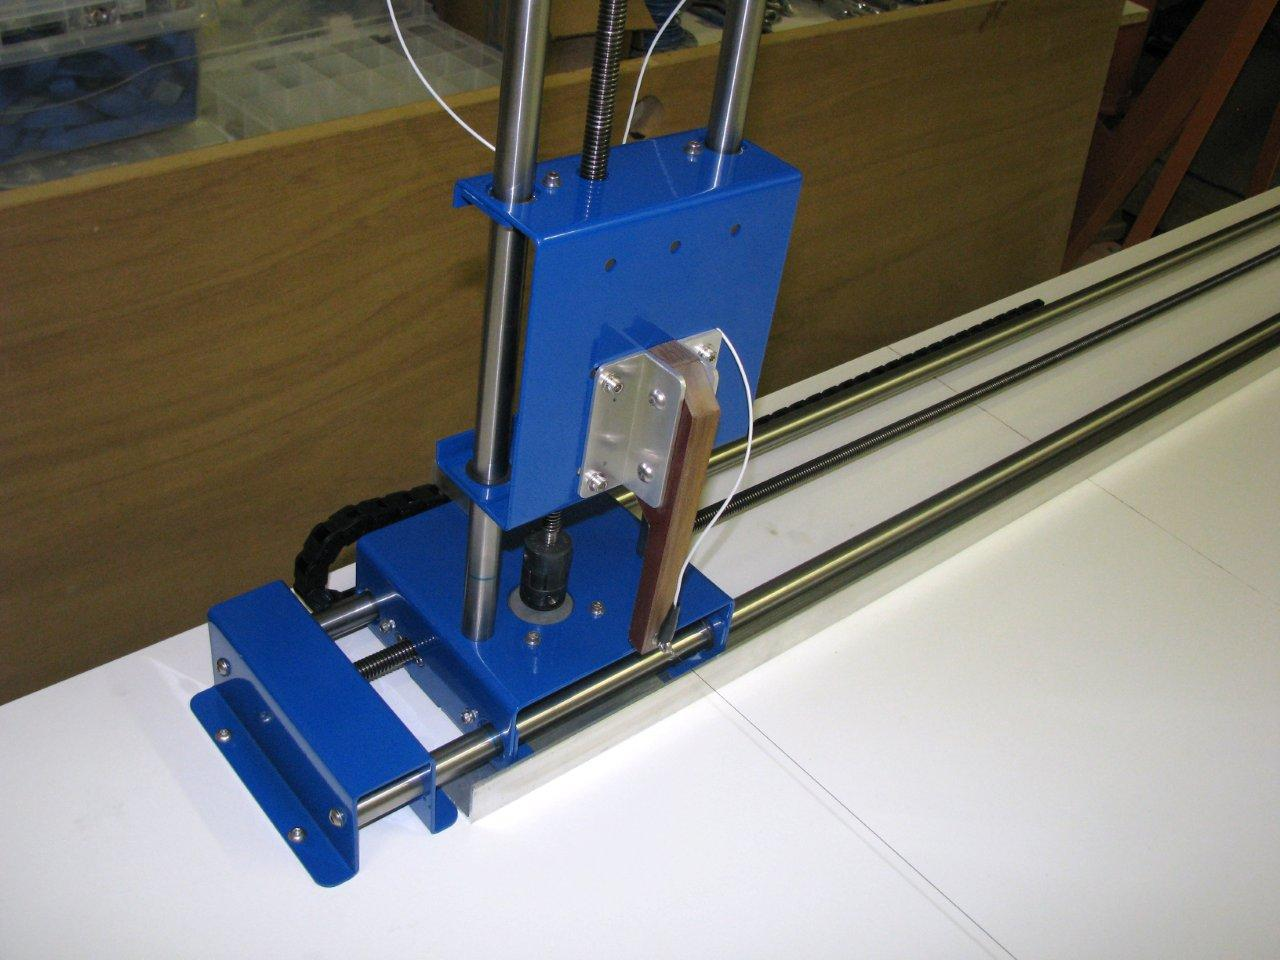 foam cutter A hot-wire foam cutter is a tool used to cut polystyrene foam and similar materials  the device consists of a thin, taut metal wire, often made of nichrome or.